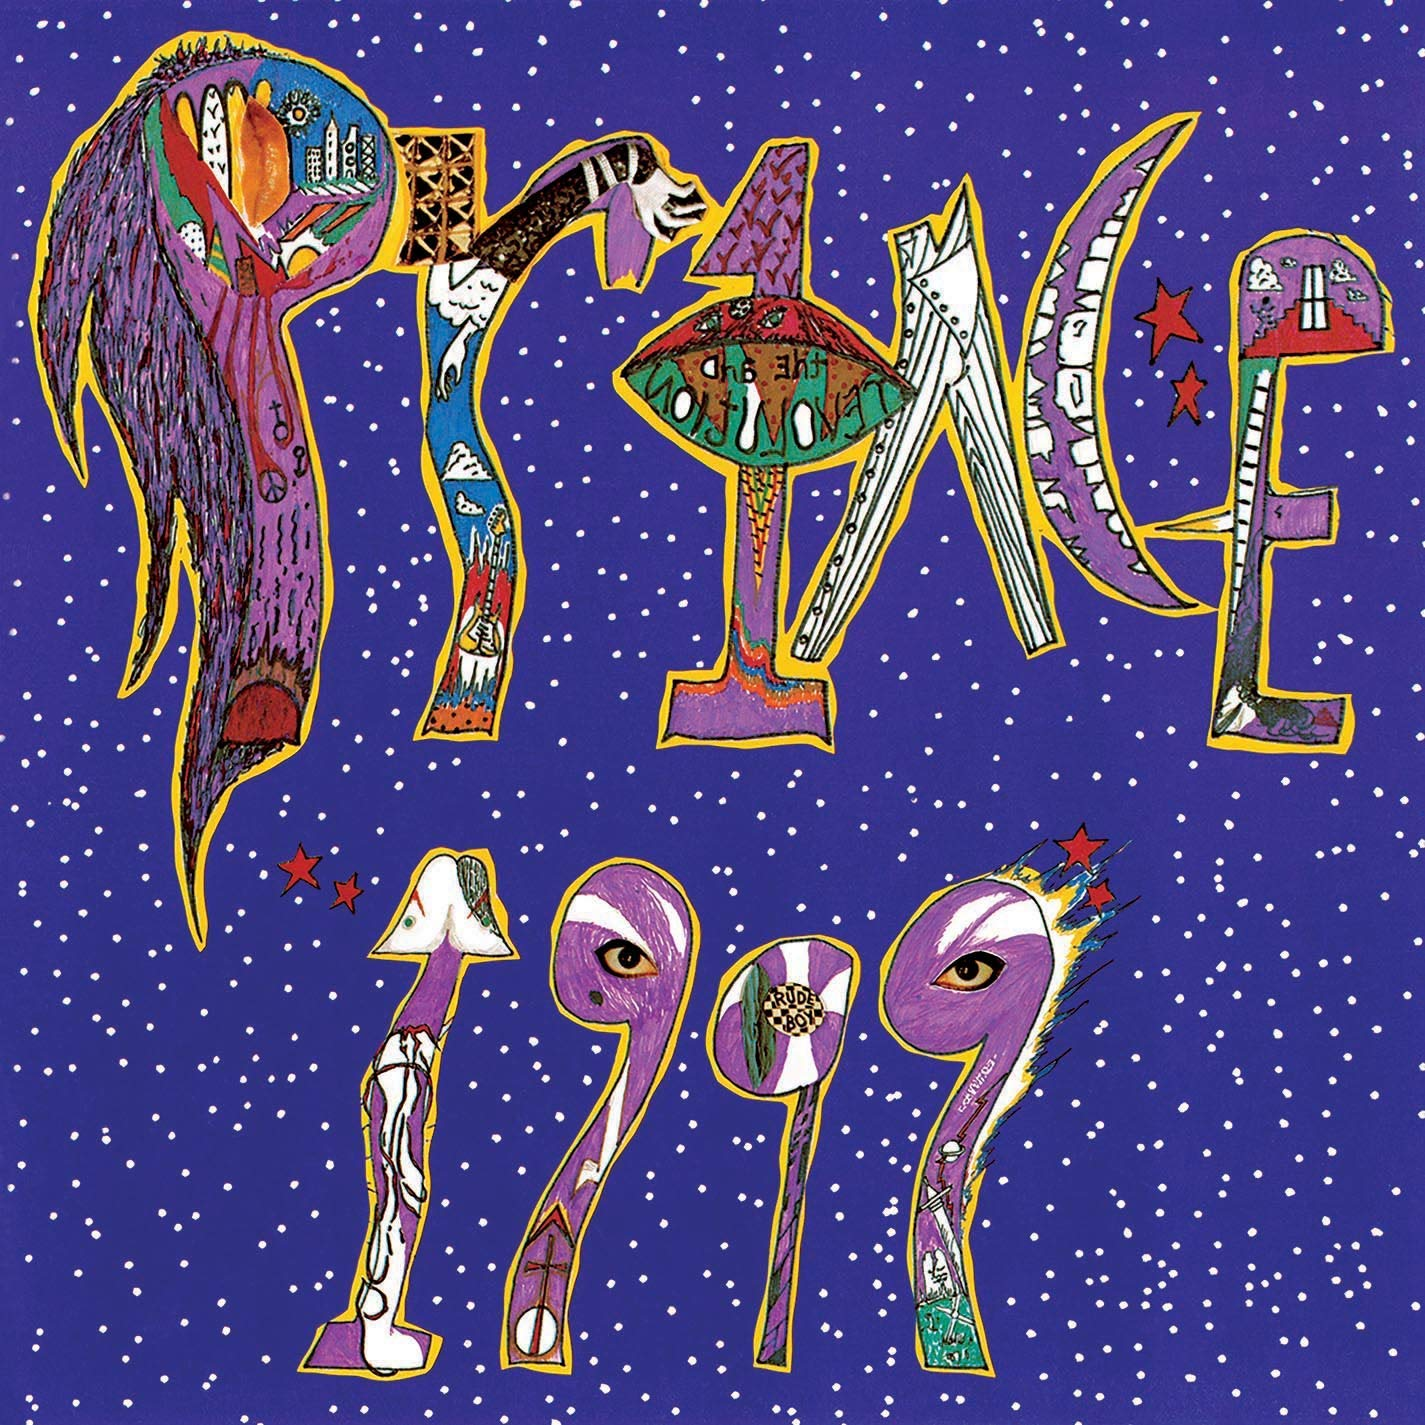 Prince 1999 - 4LP Deluxe Edition